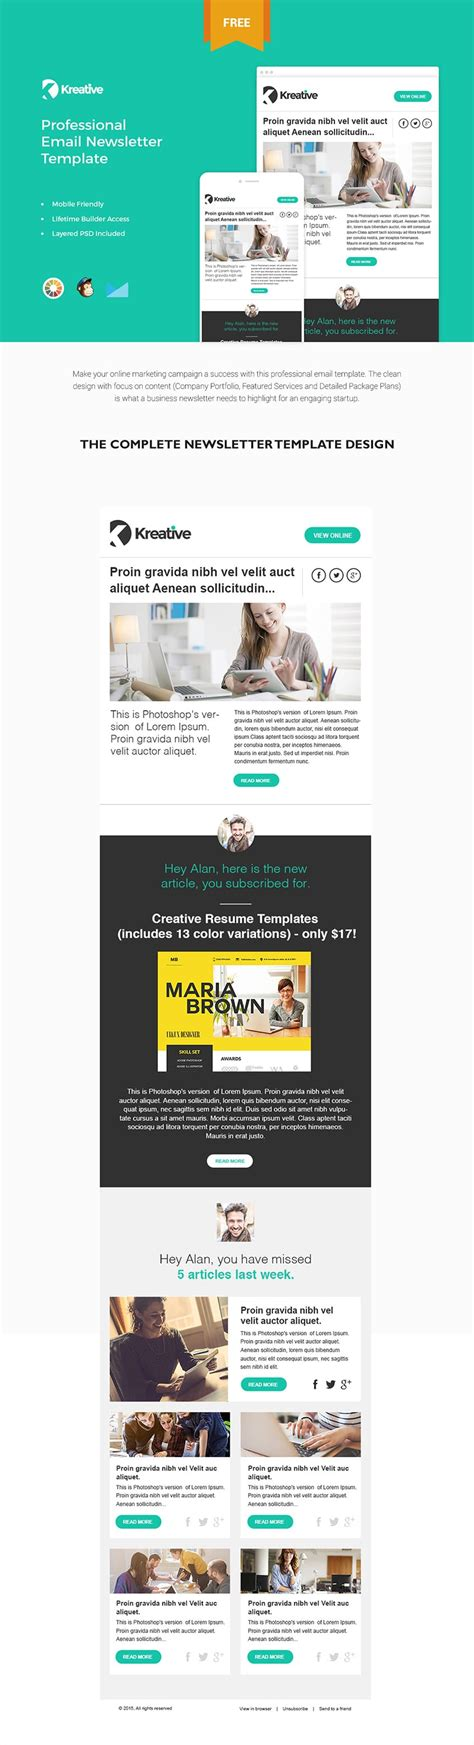 Free Email Newsletter Templates Psd 187 Css Author Free Email Newsletter Templates